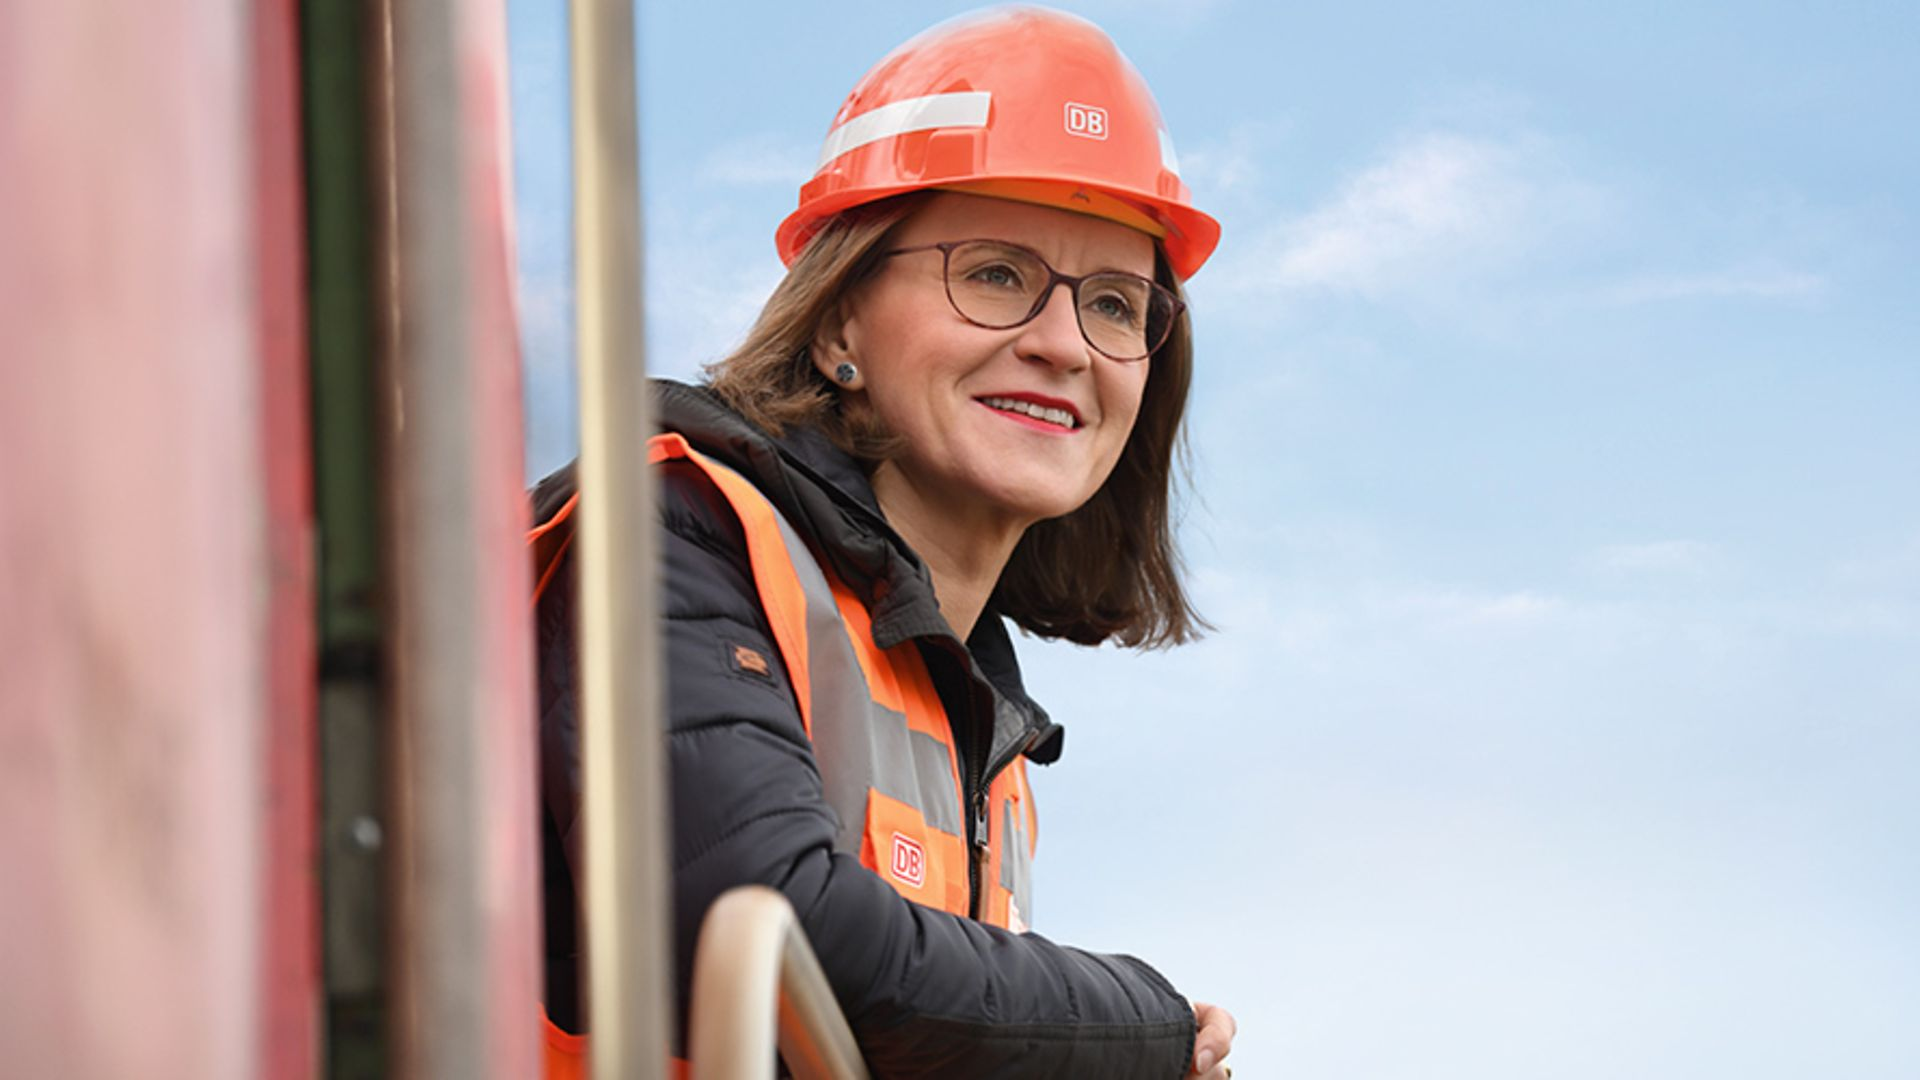 DB Cargo Head of Bord Board Dr. Sigrid Nikutta watching out of a lokomotive wearing safety clothes